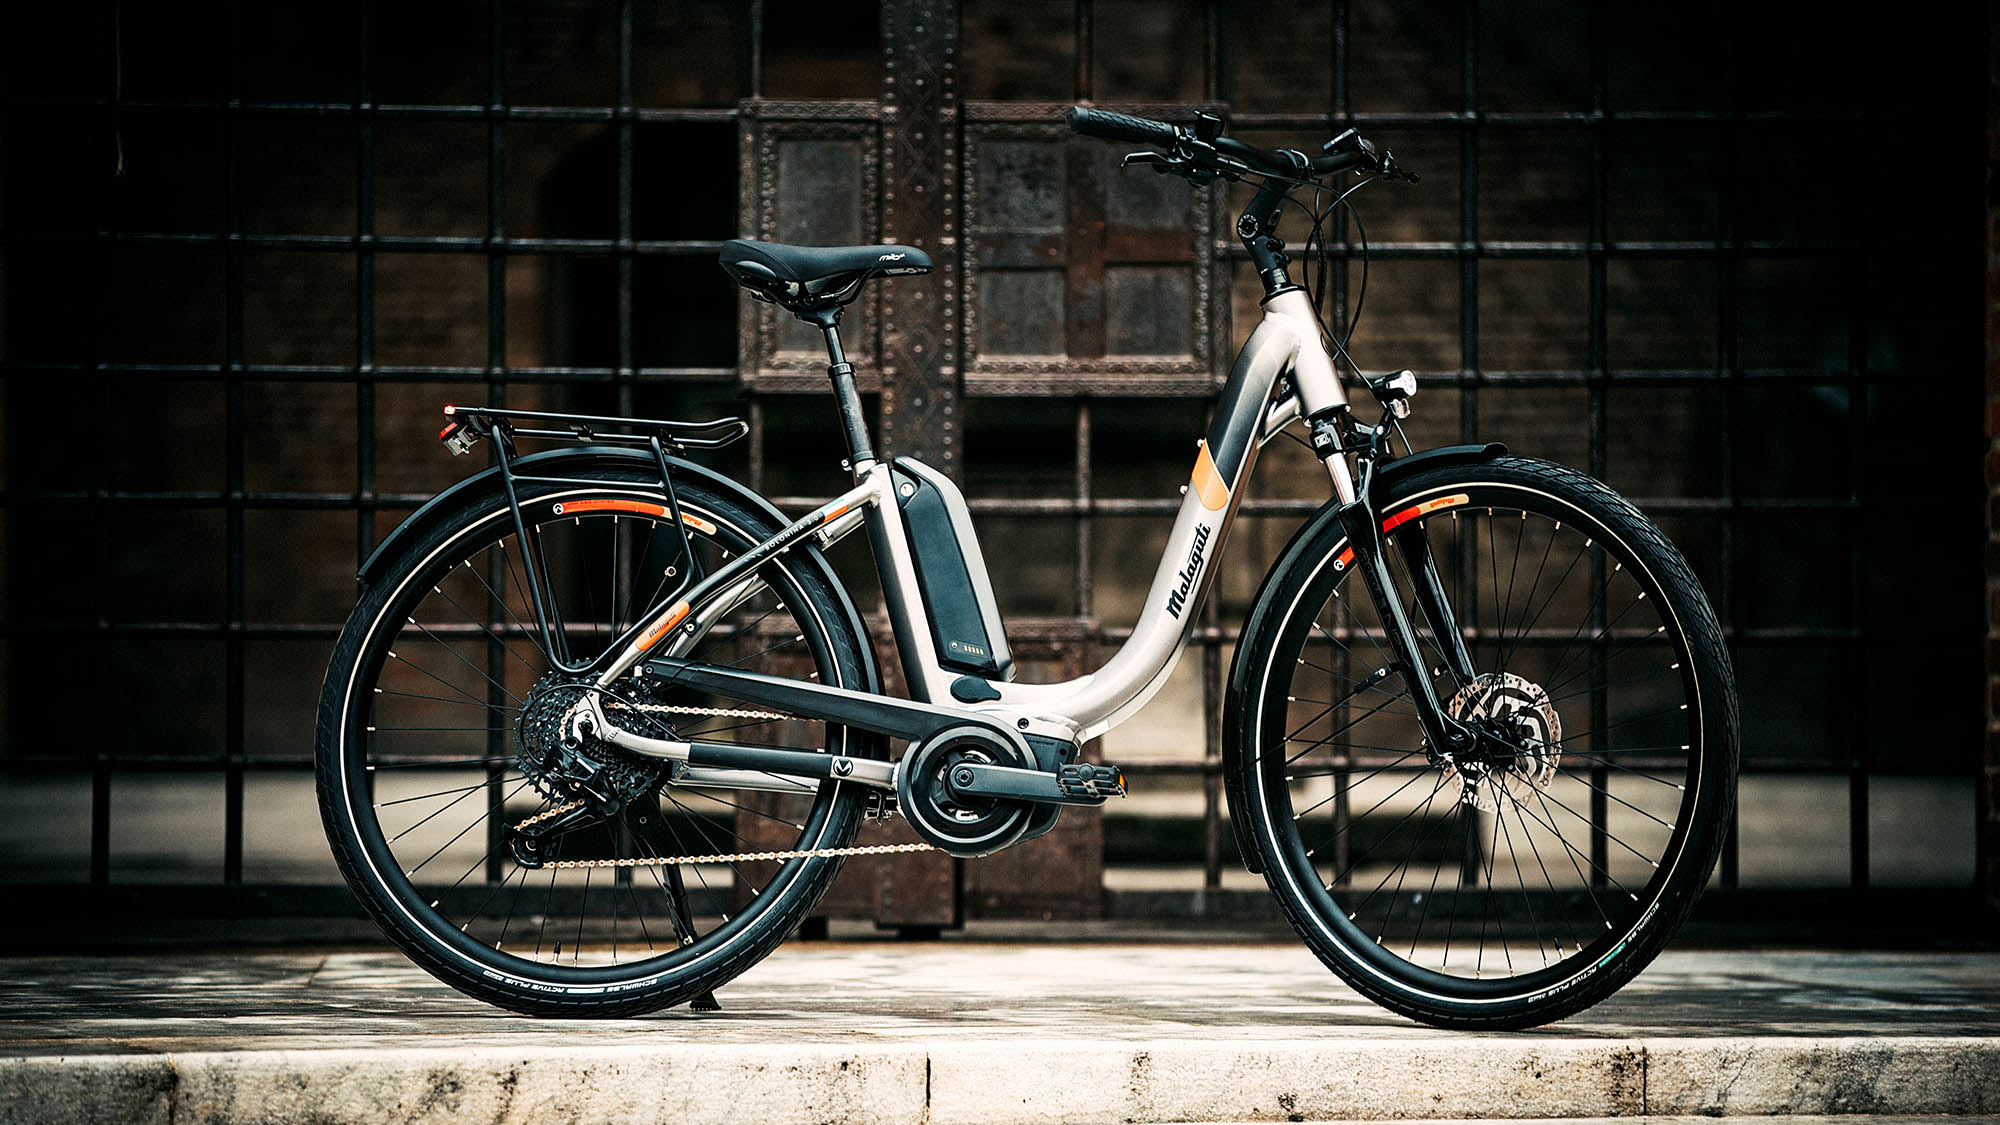 https://malaguti-bicycles.com/wp-content/uploads/sites/2/2020/10/MALAGUTI20_BOLONINA_BOLOGNA_byADL-8913.jpg